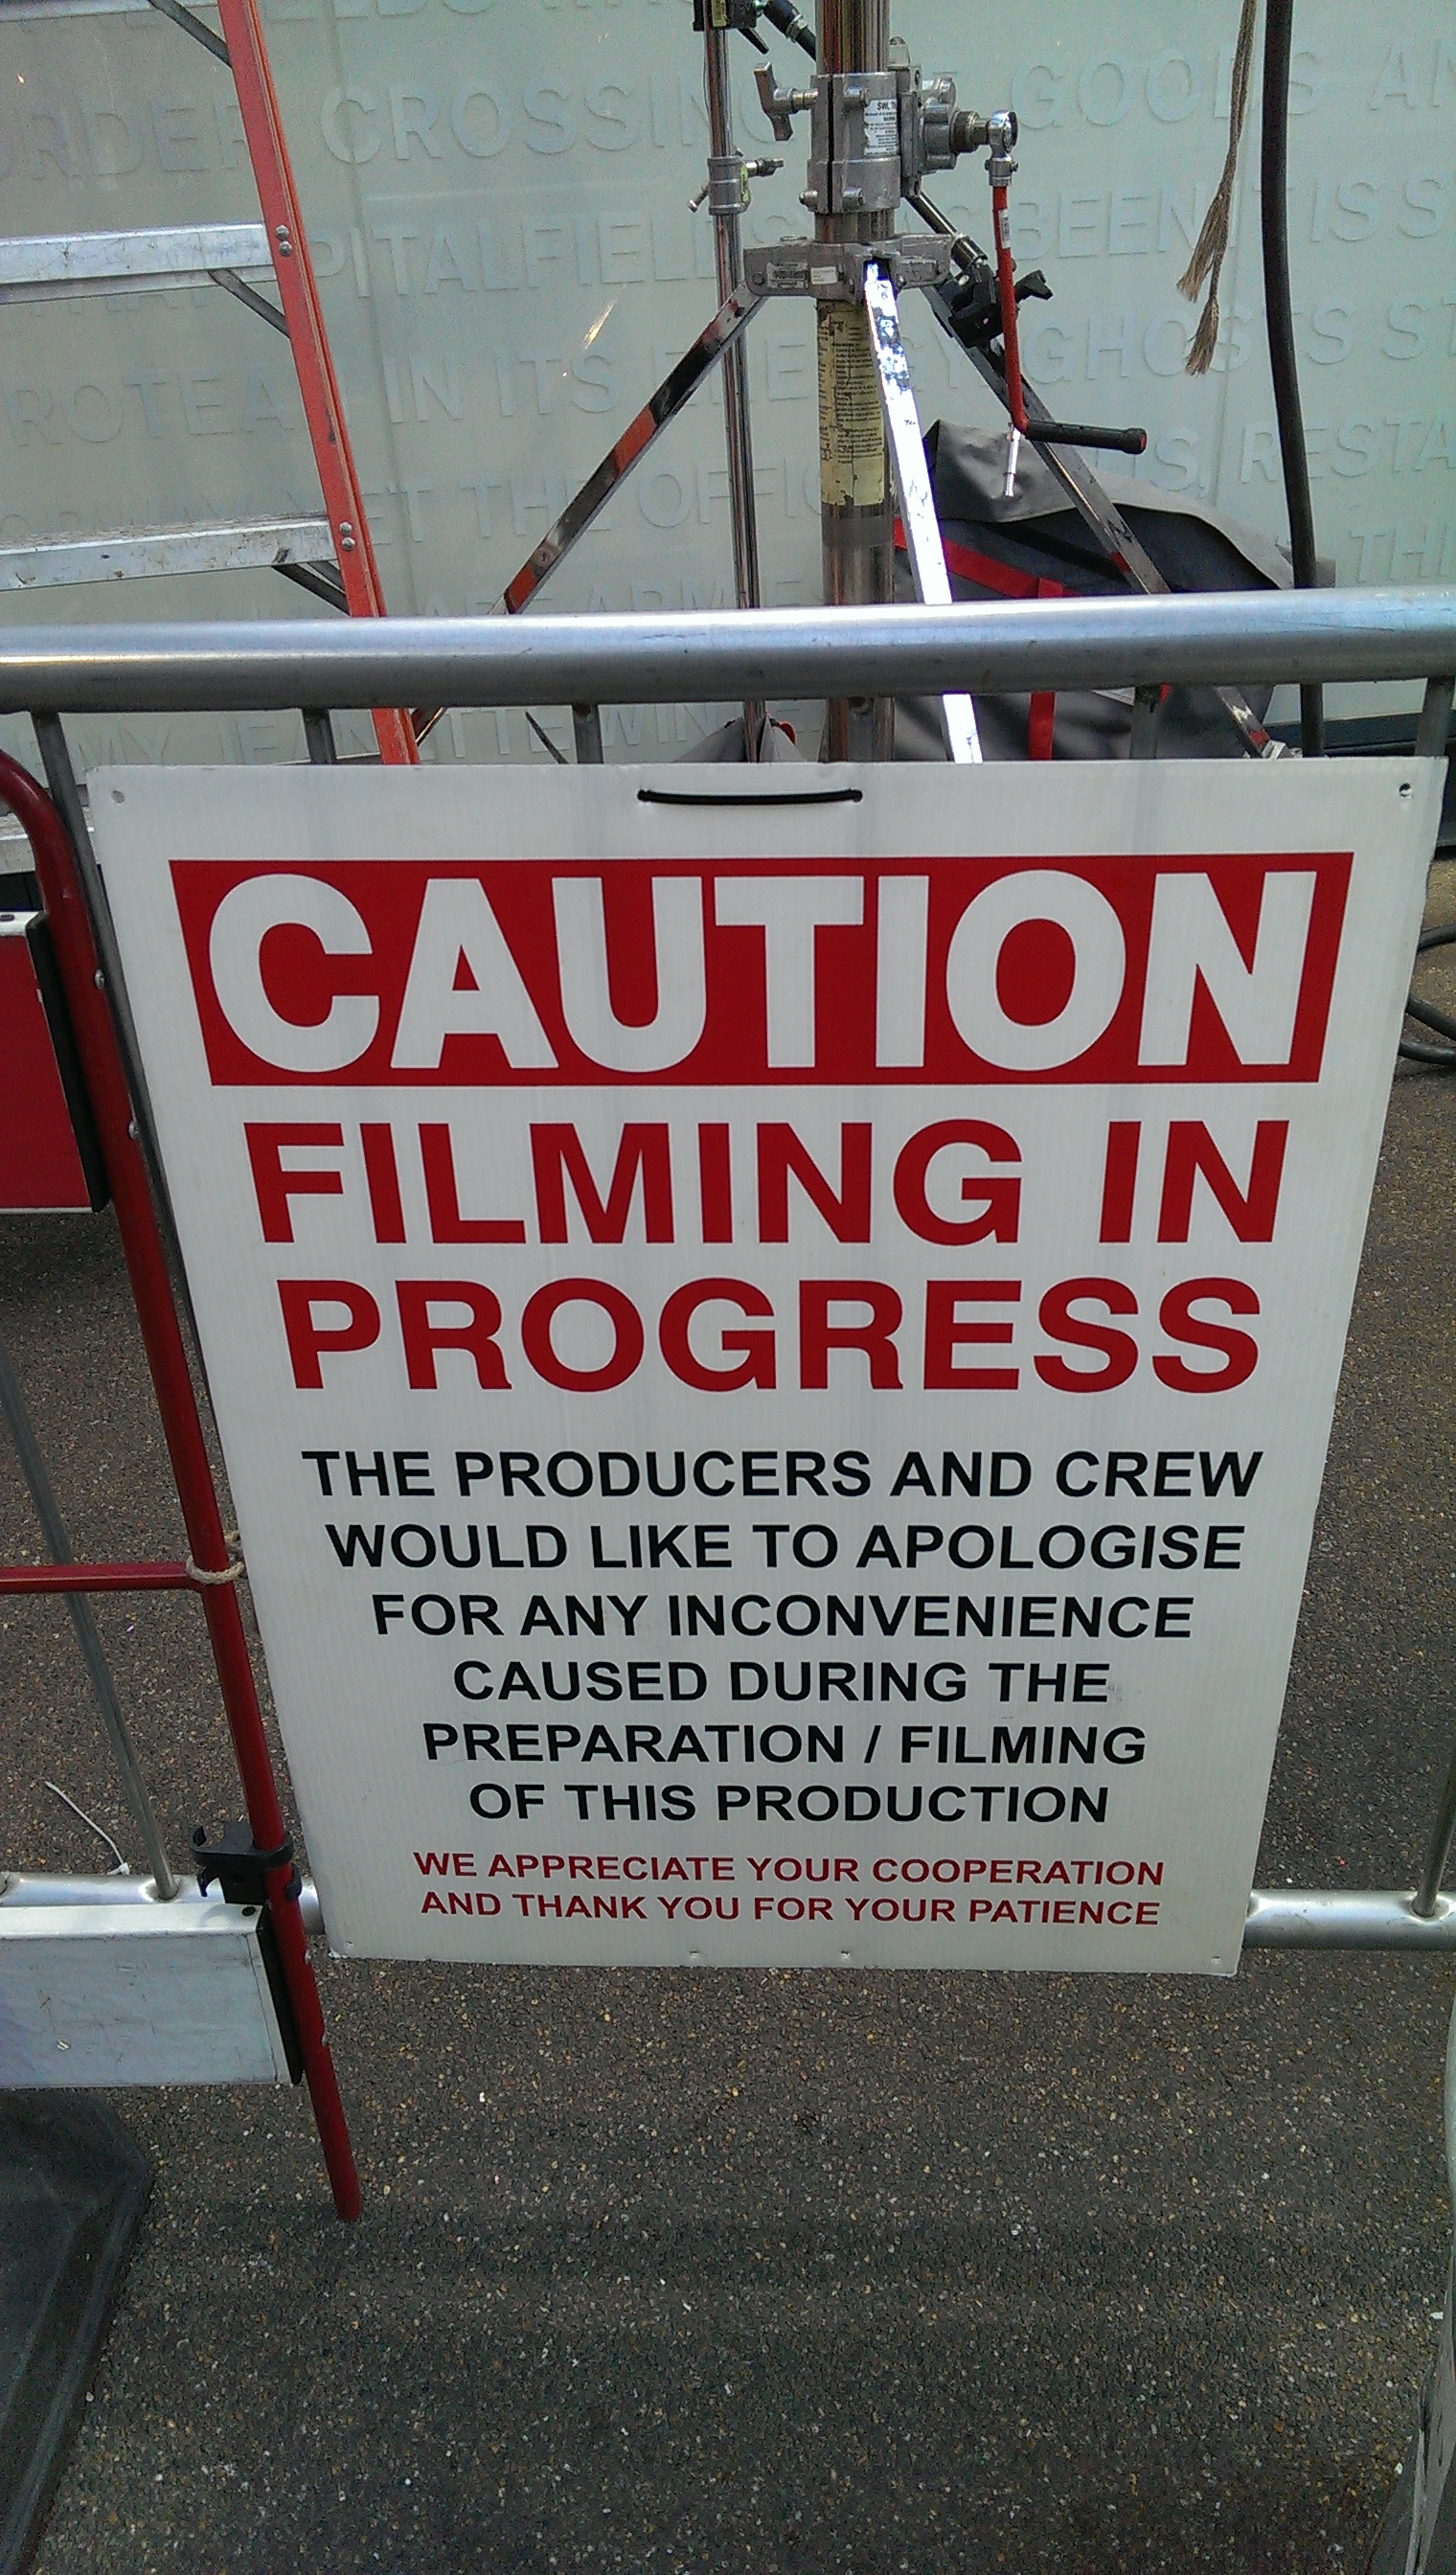 Filming in progress, by Terry Freedman